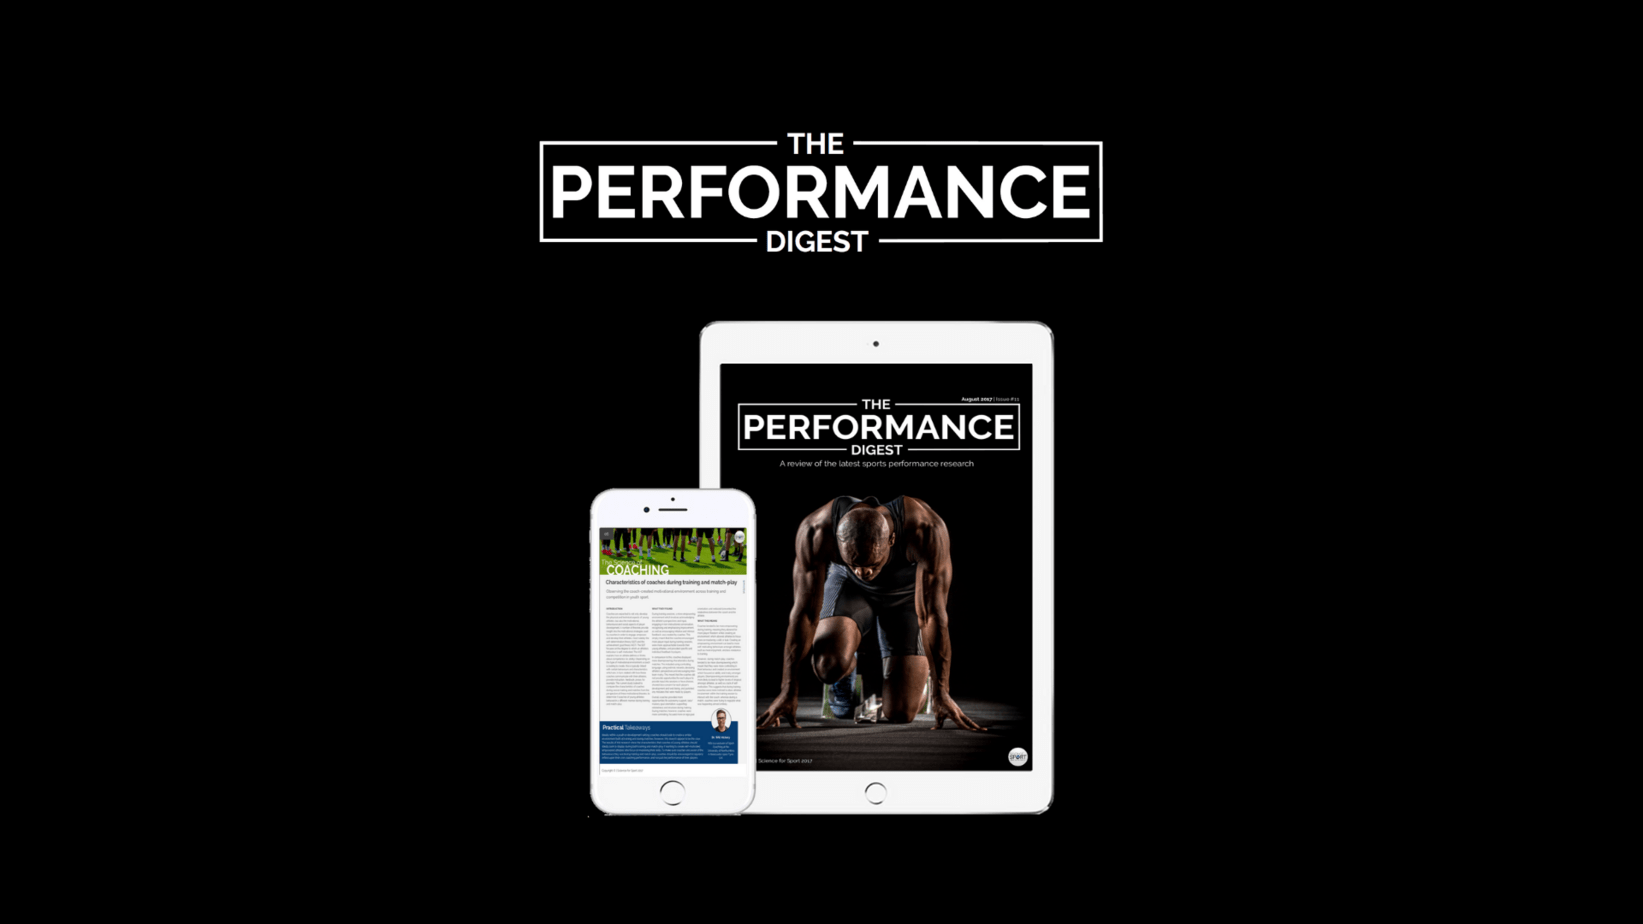 Performance Digest